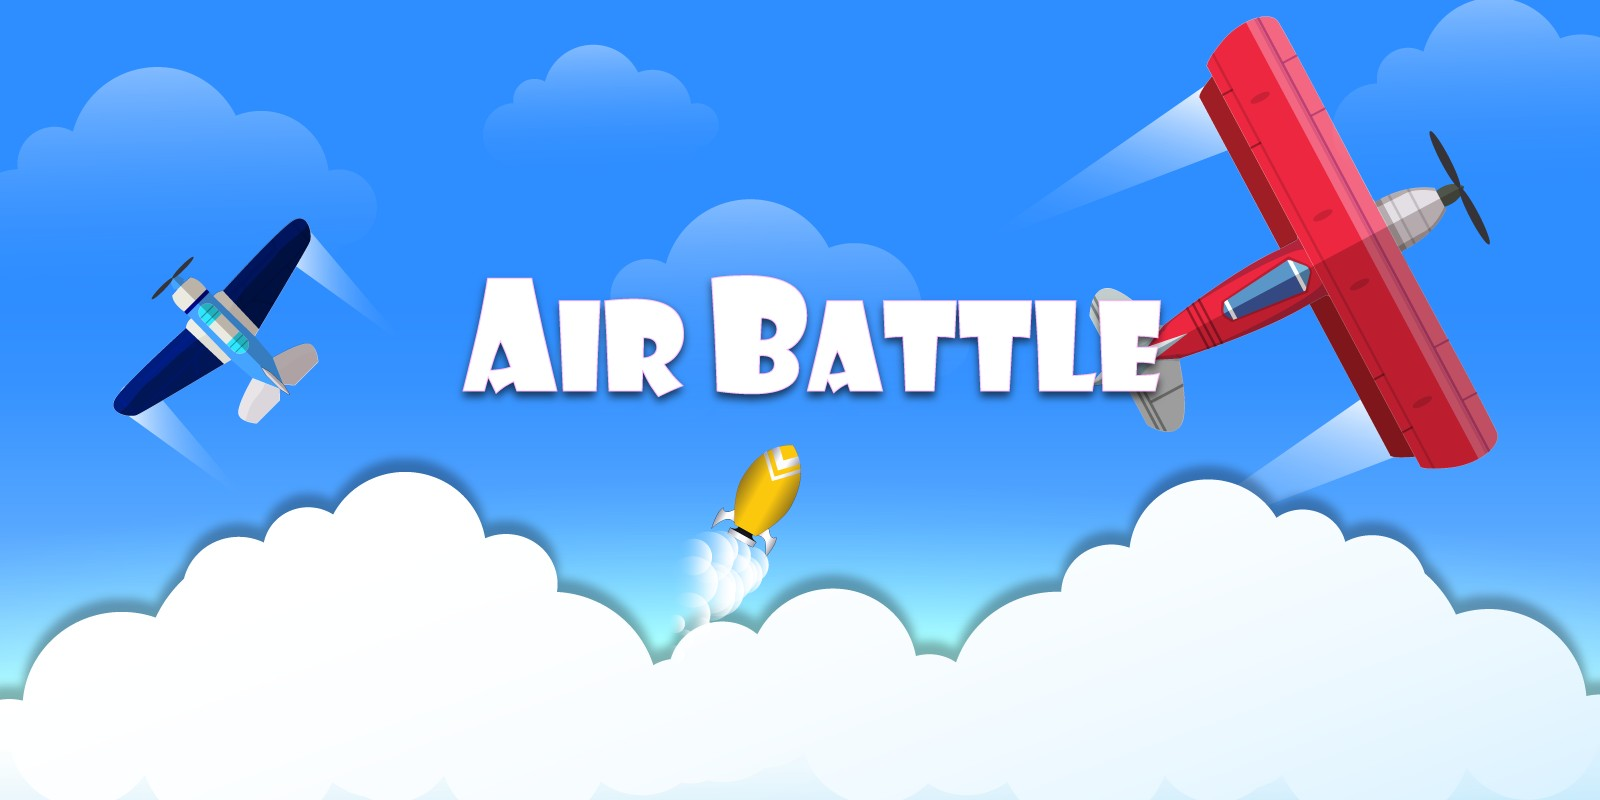 Air Battle - Unity  Project For Android And iOS